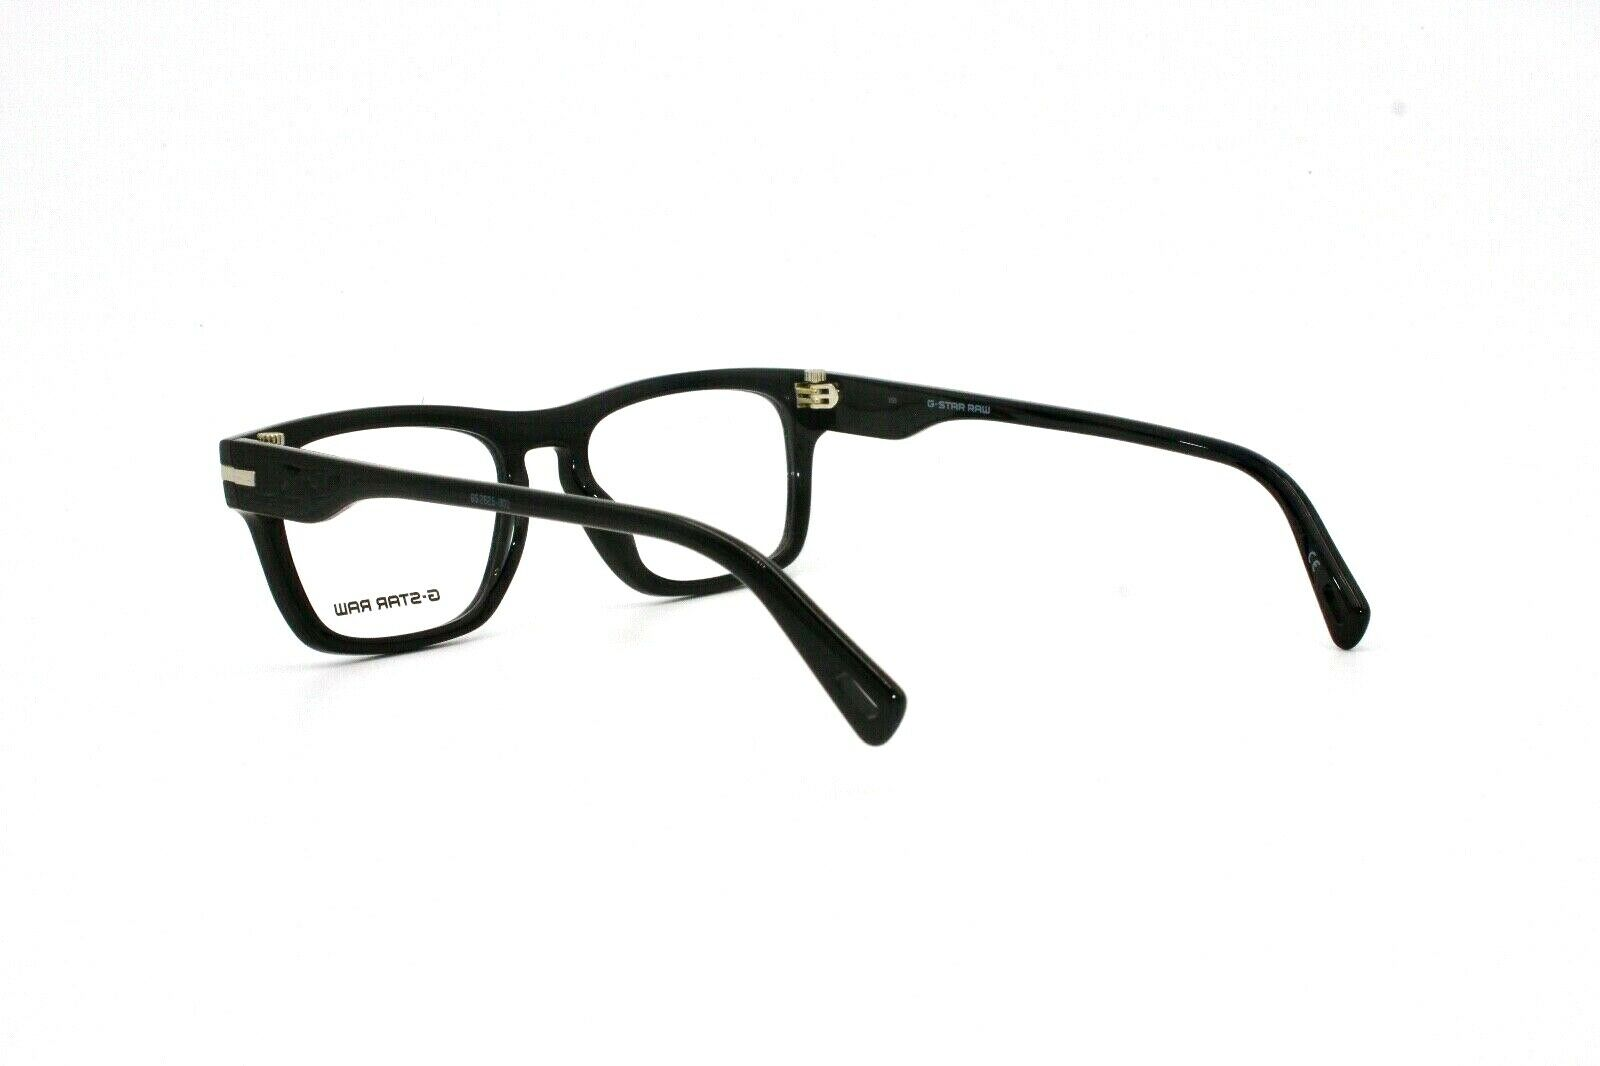 G-Star Raw Eyeglass Frame GS2625-001 Fat Moiric 53 18 150 - Mydesigneroptic